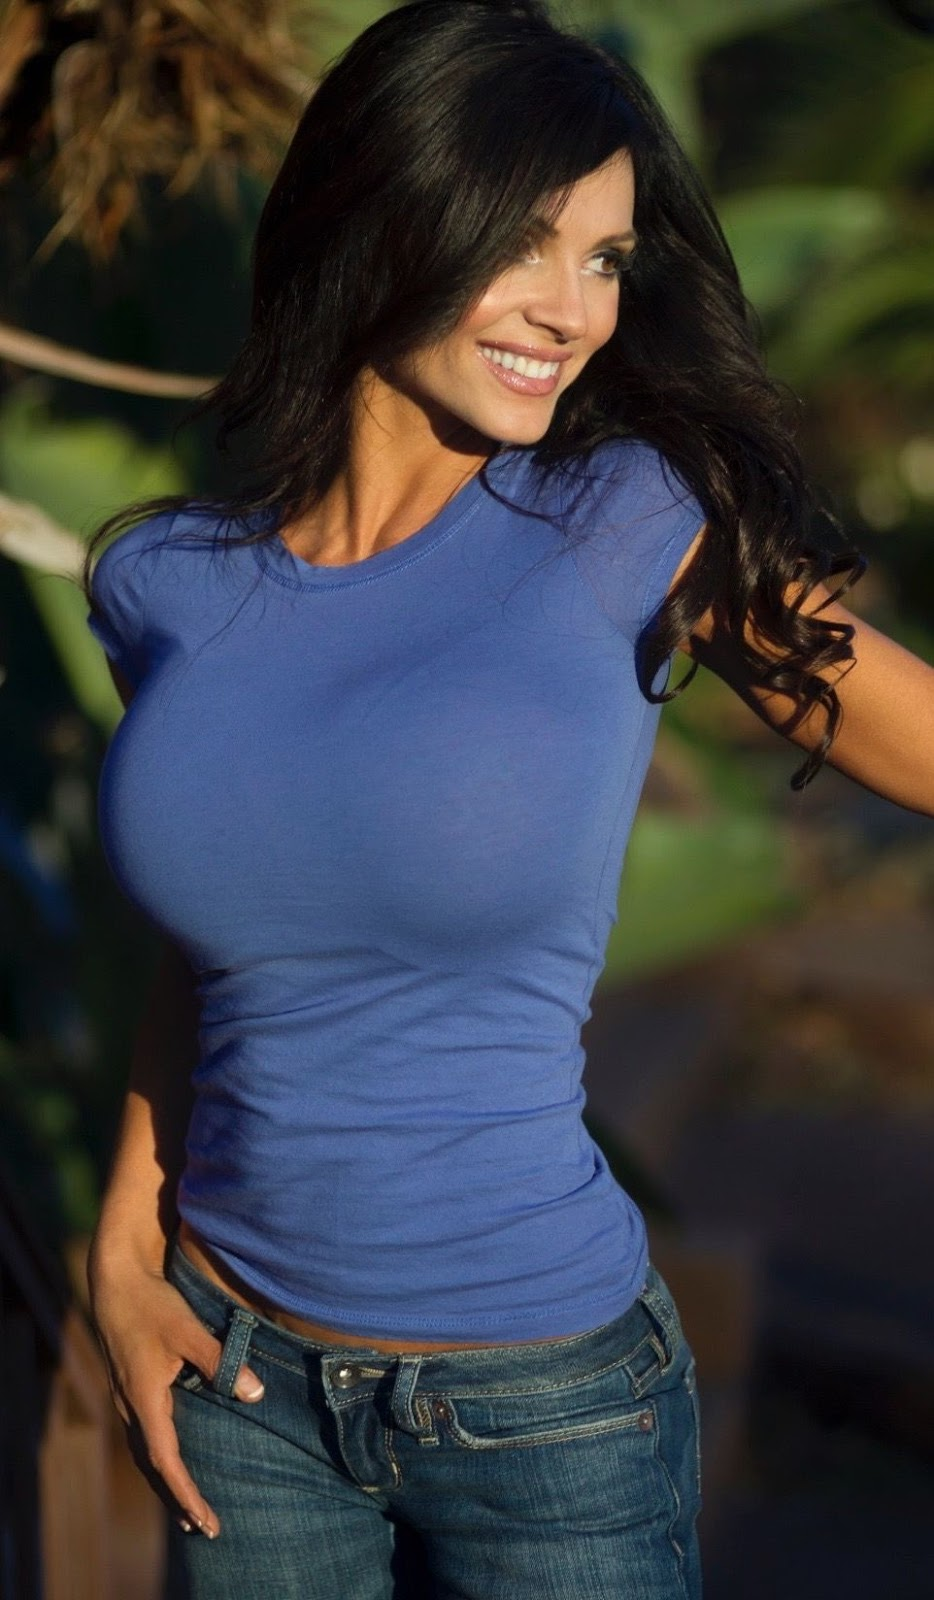 Big oiled tits in tight shirt porn pic